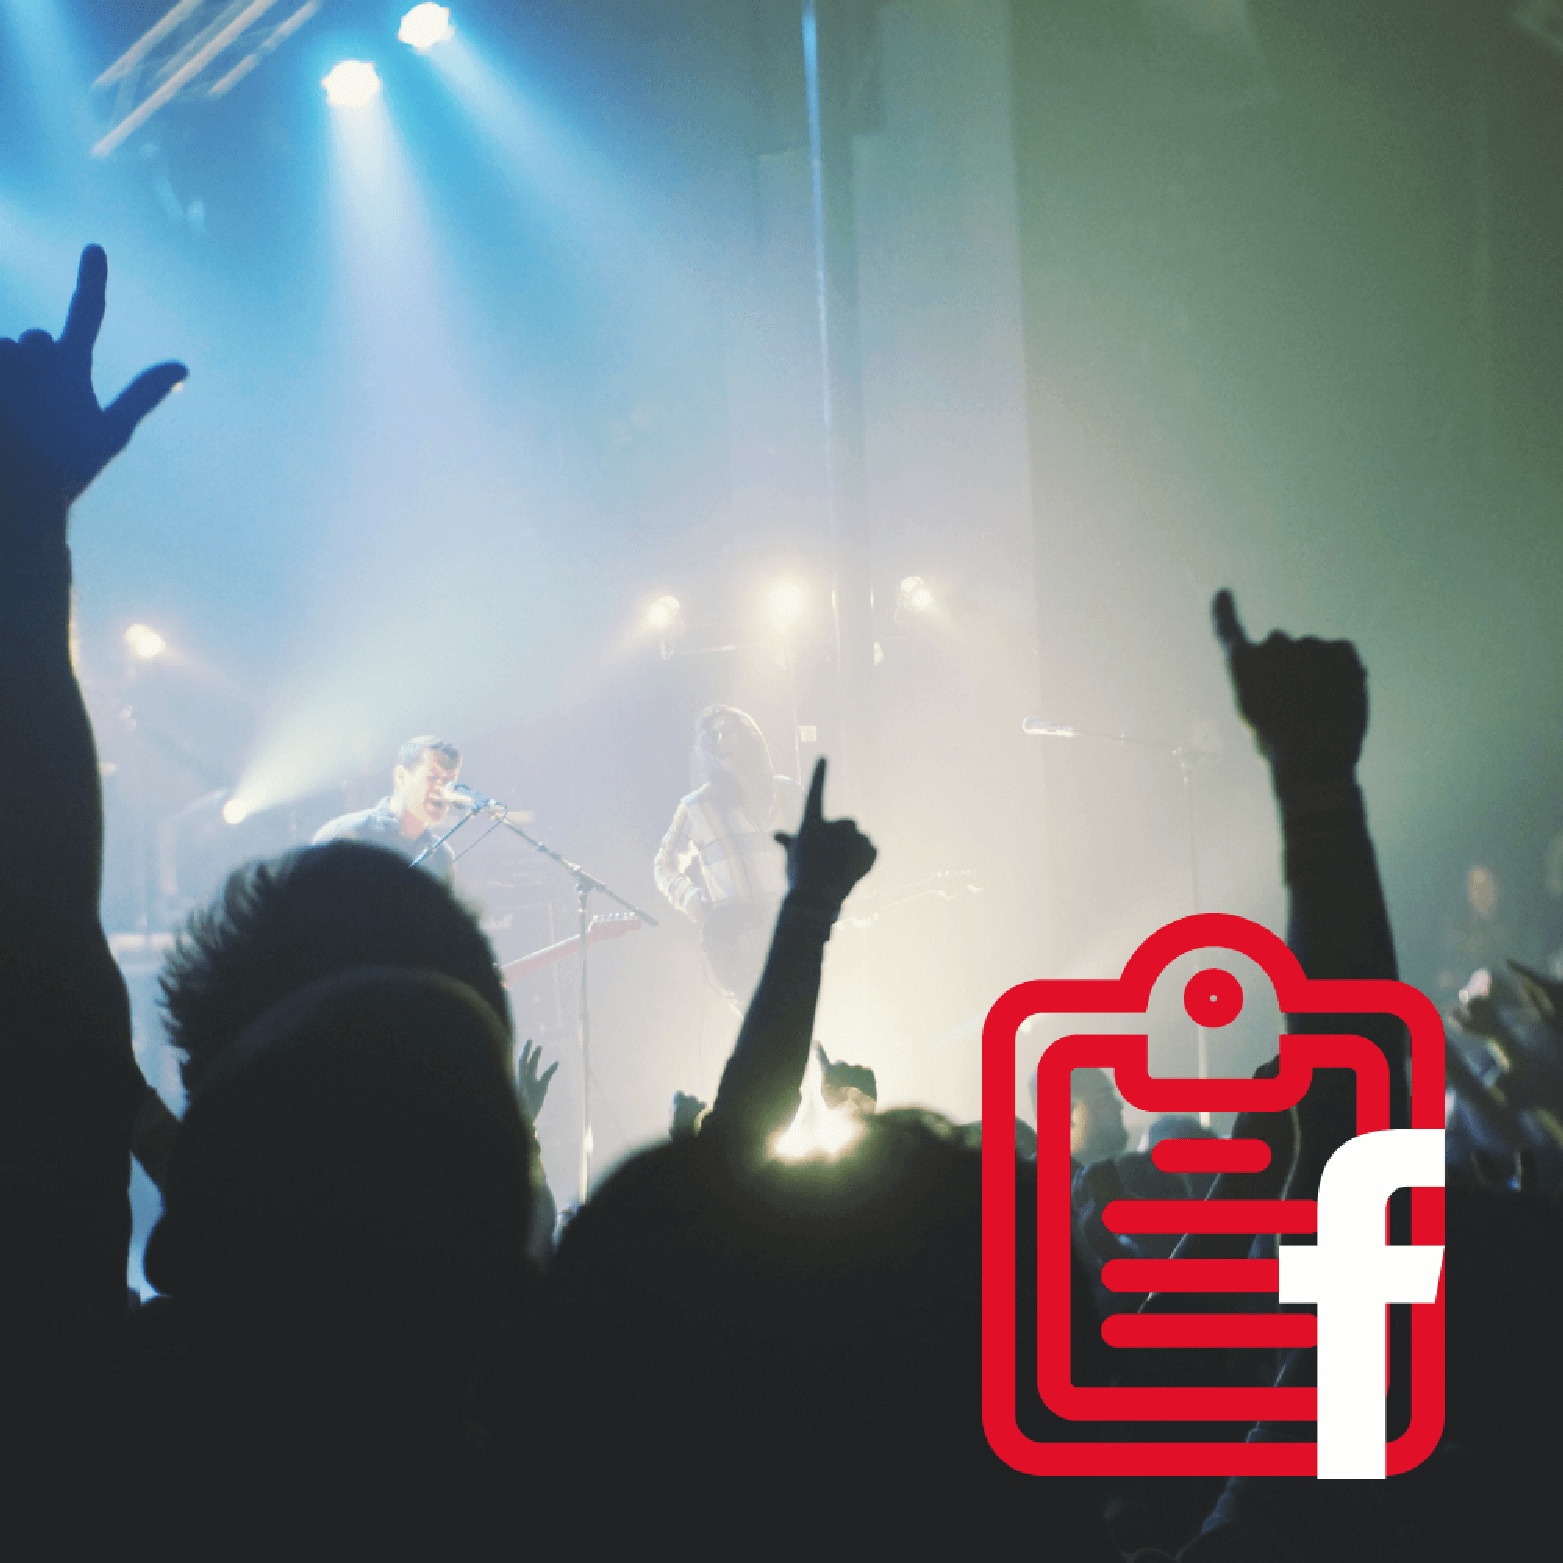 Show Review on Social Media